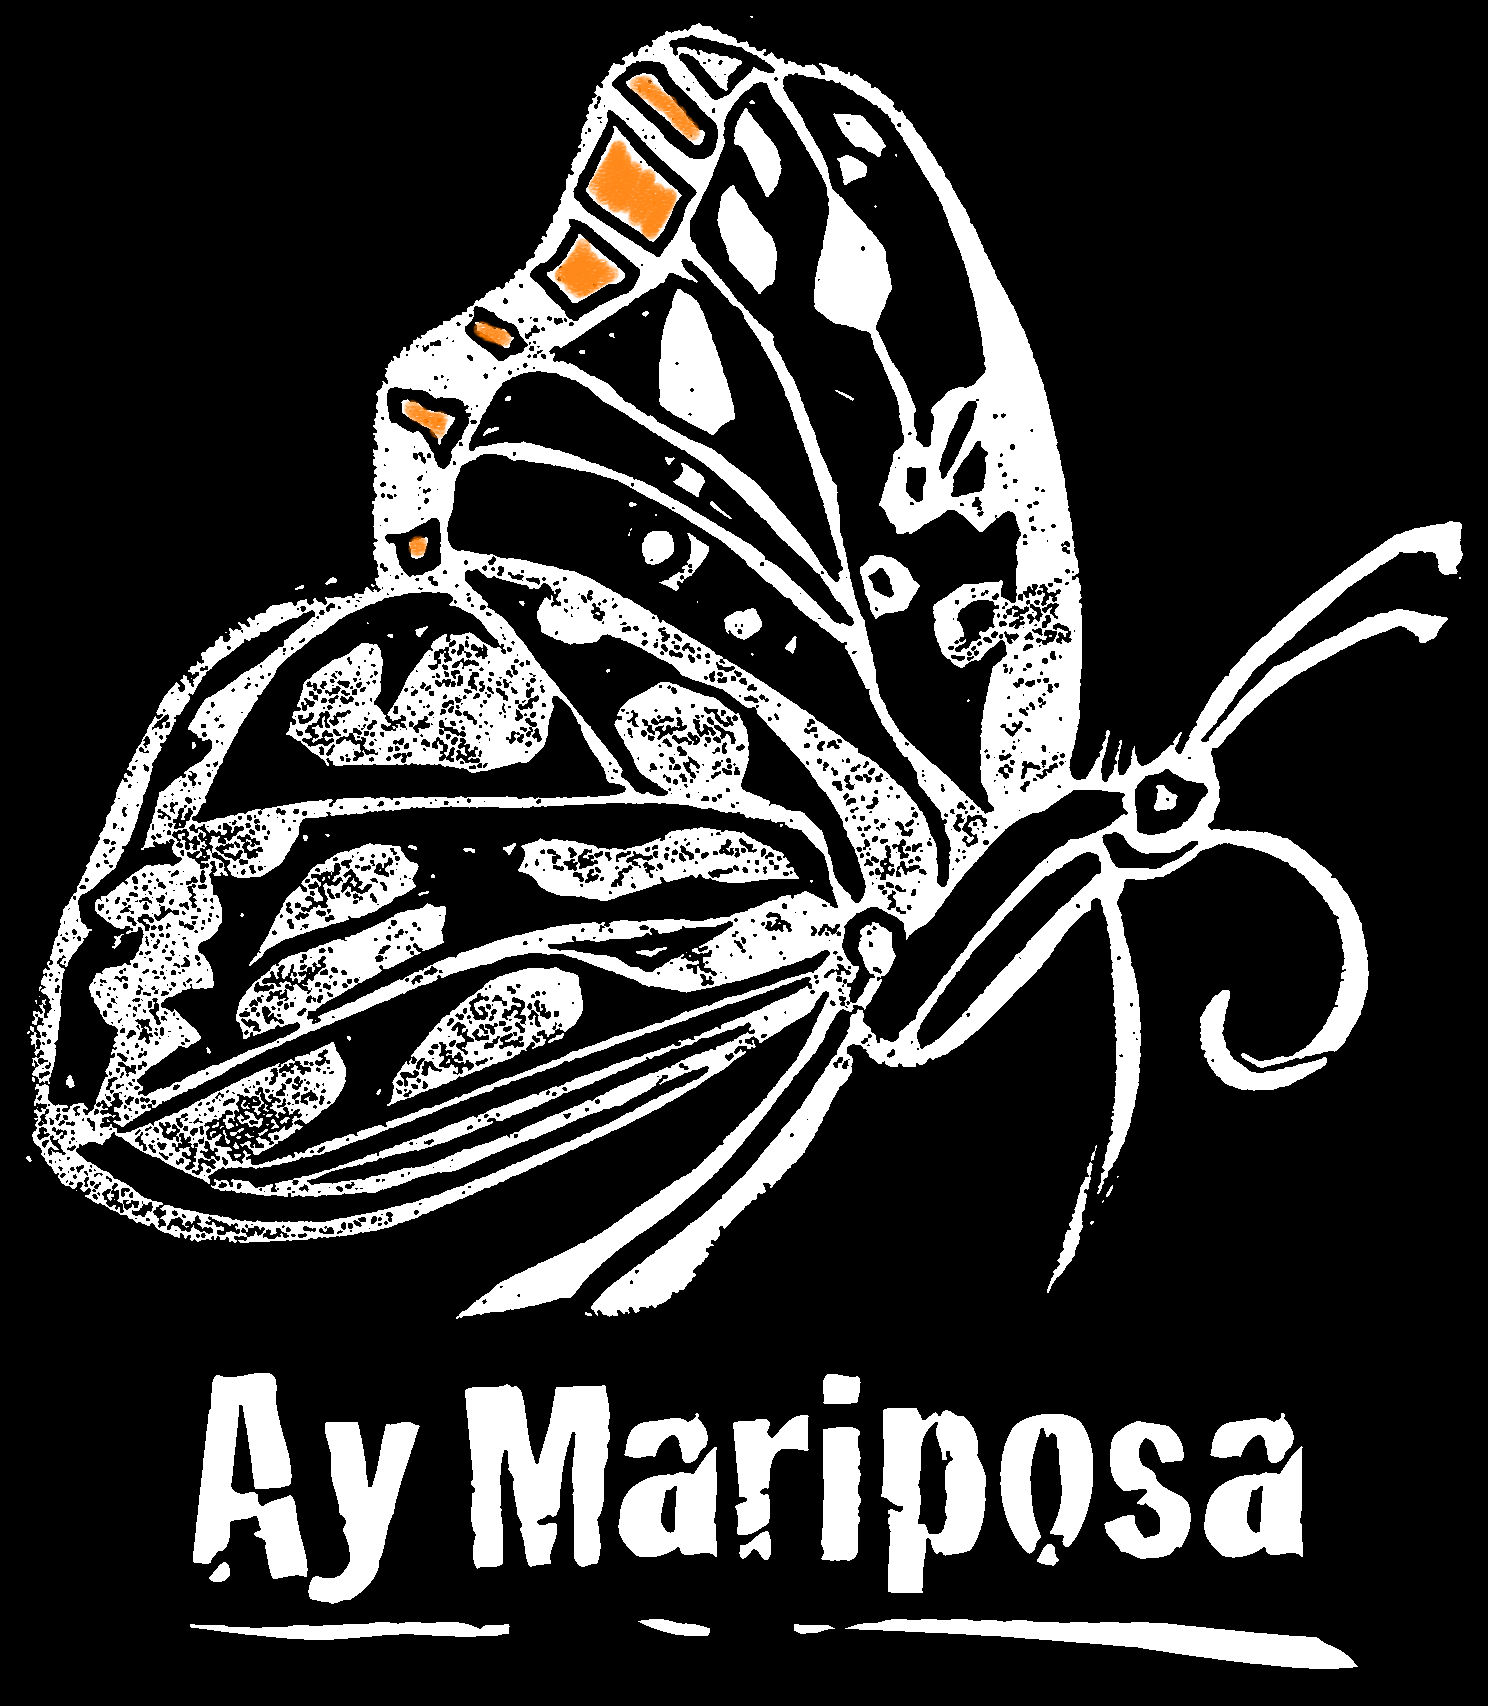 Mariposa-campaign logo no box_whiteONblack with orange.jpg